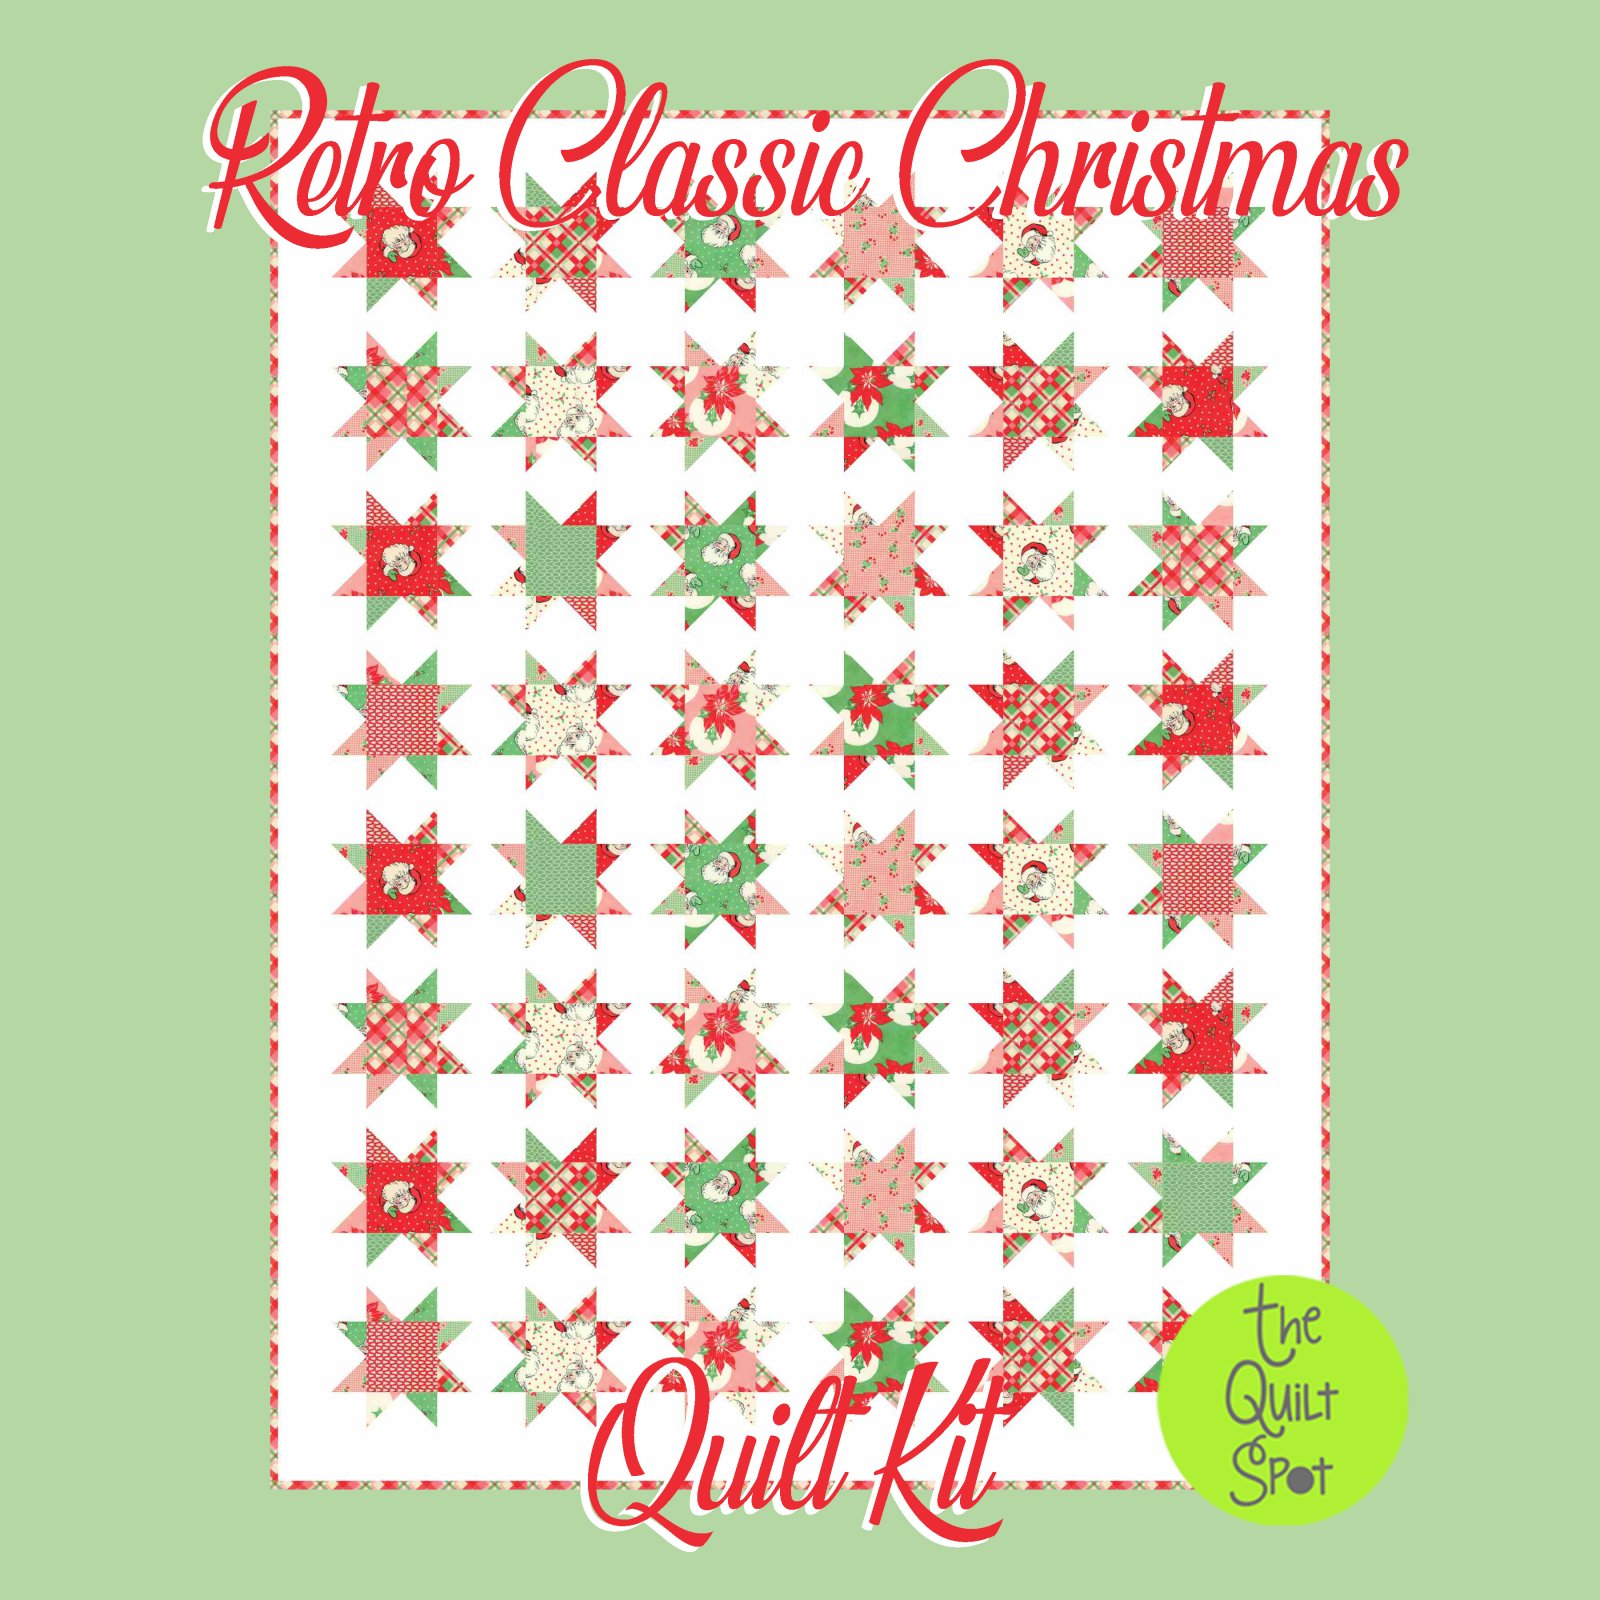 Retro Classic Christmas Swell Quilt Kit